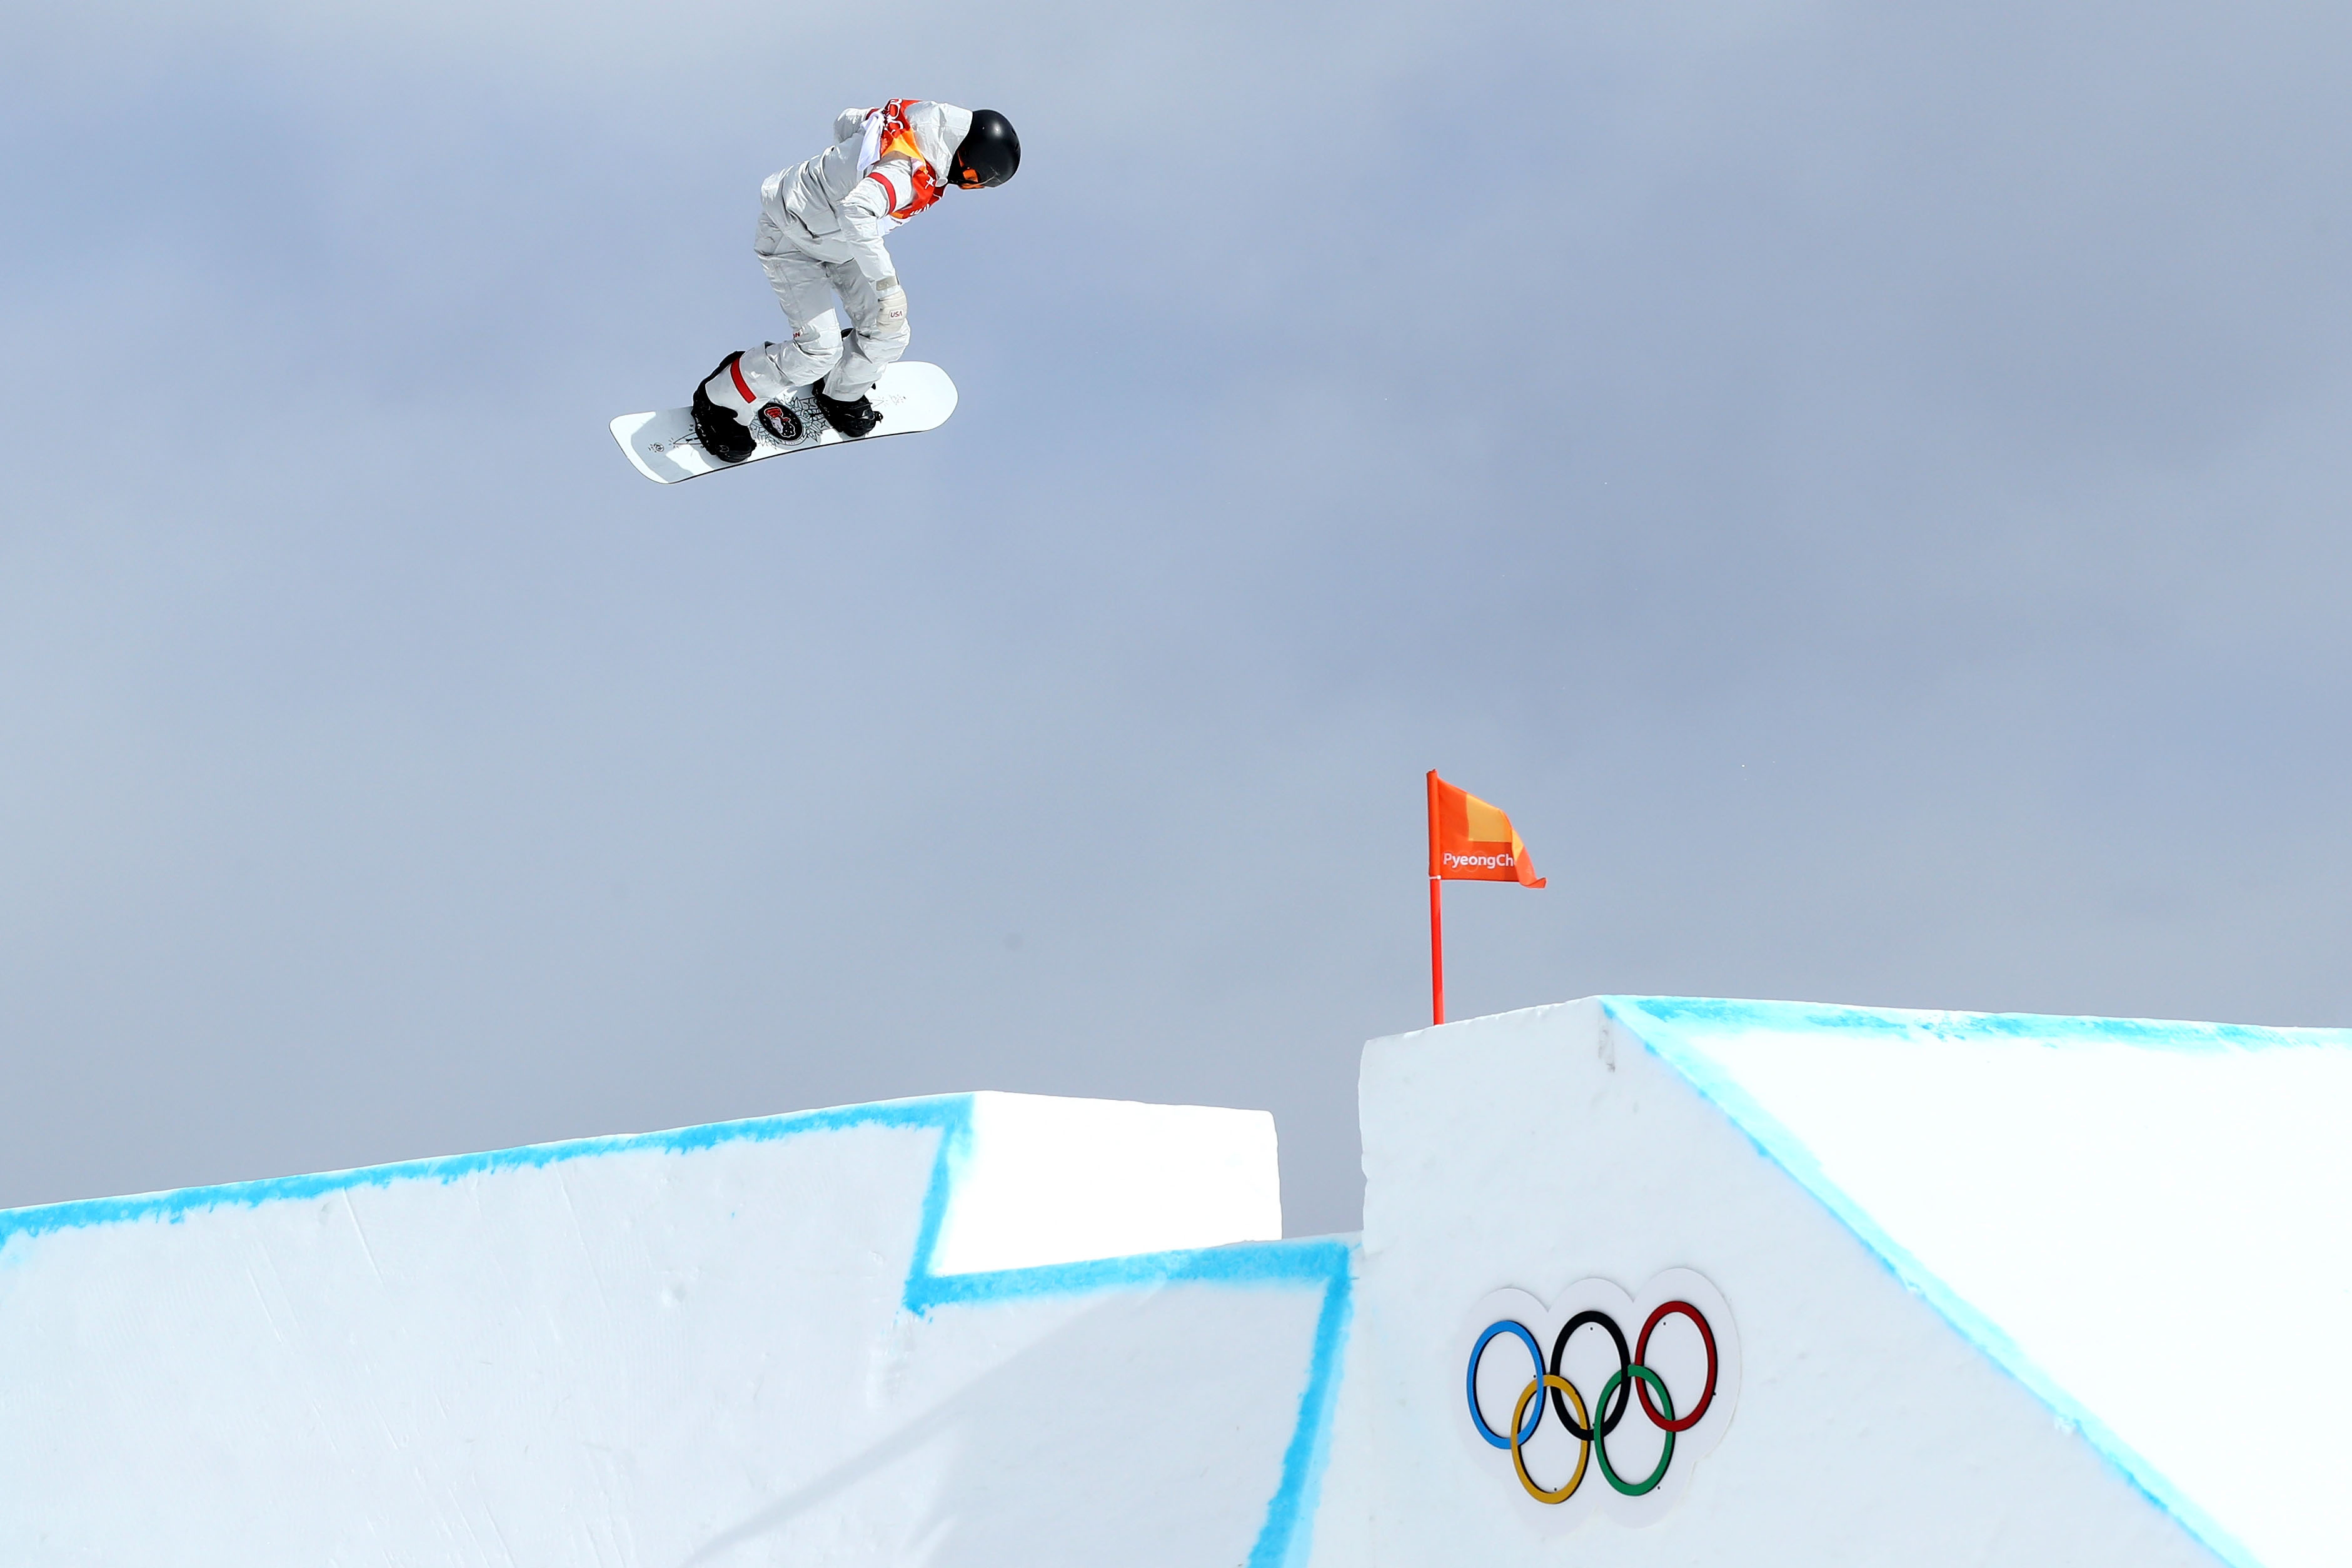 Olympic results: Women's snowboard slopestyle final